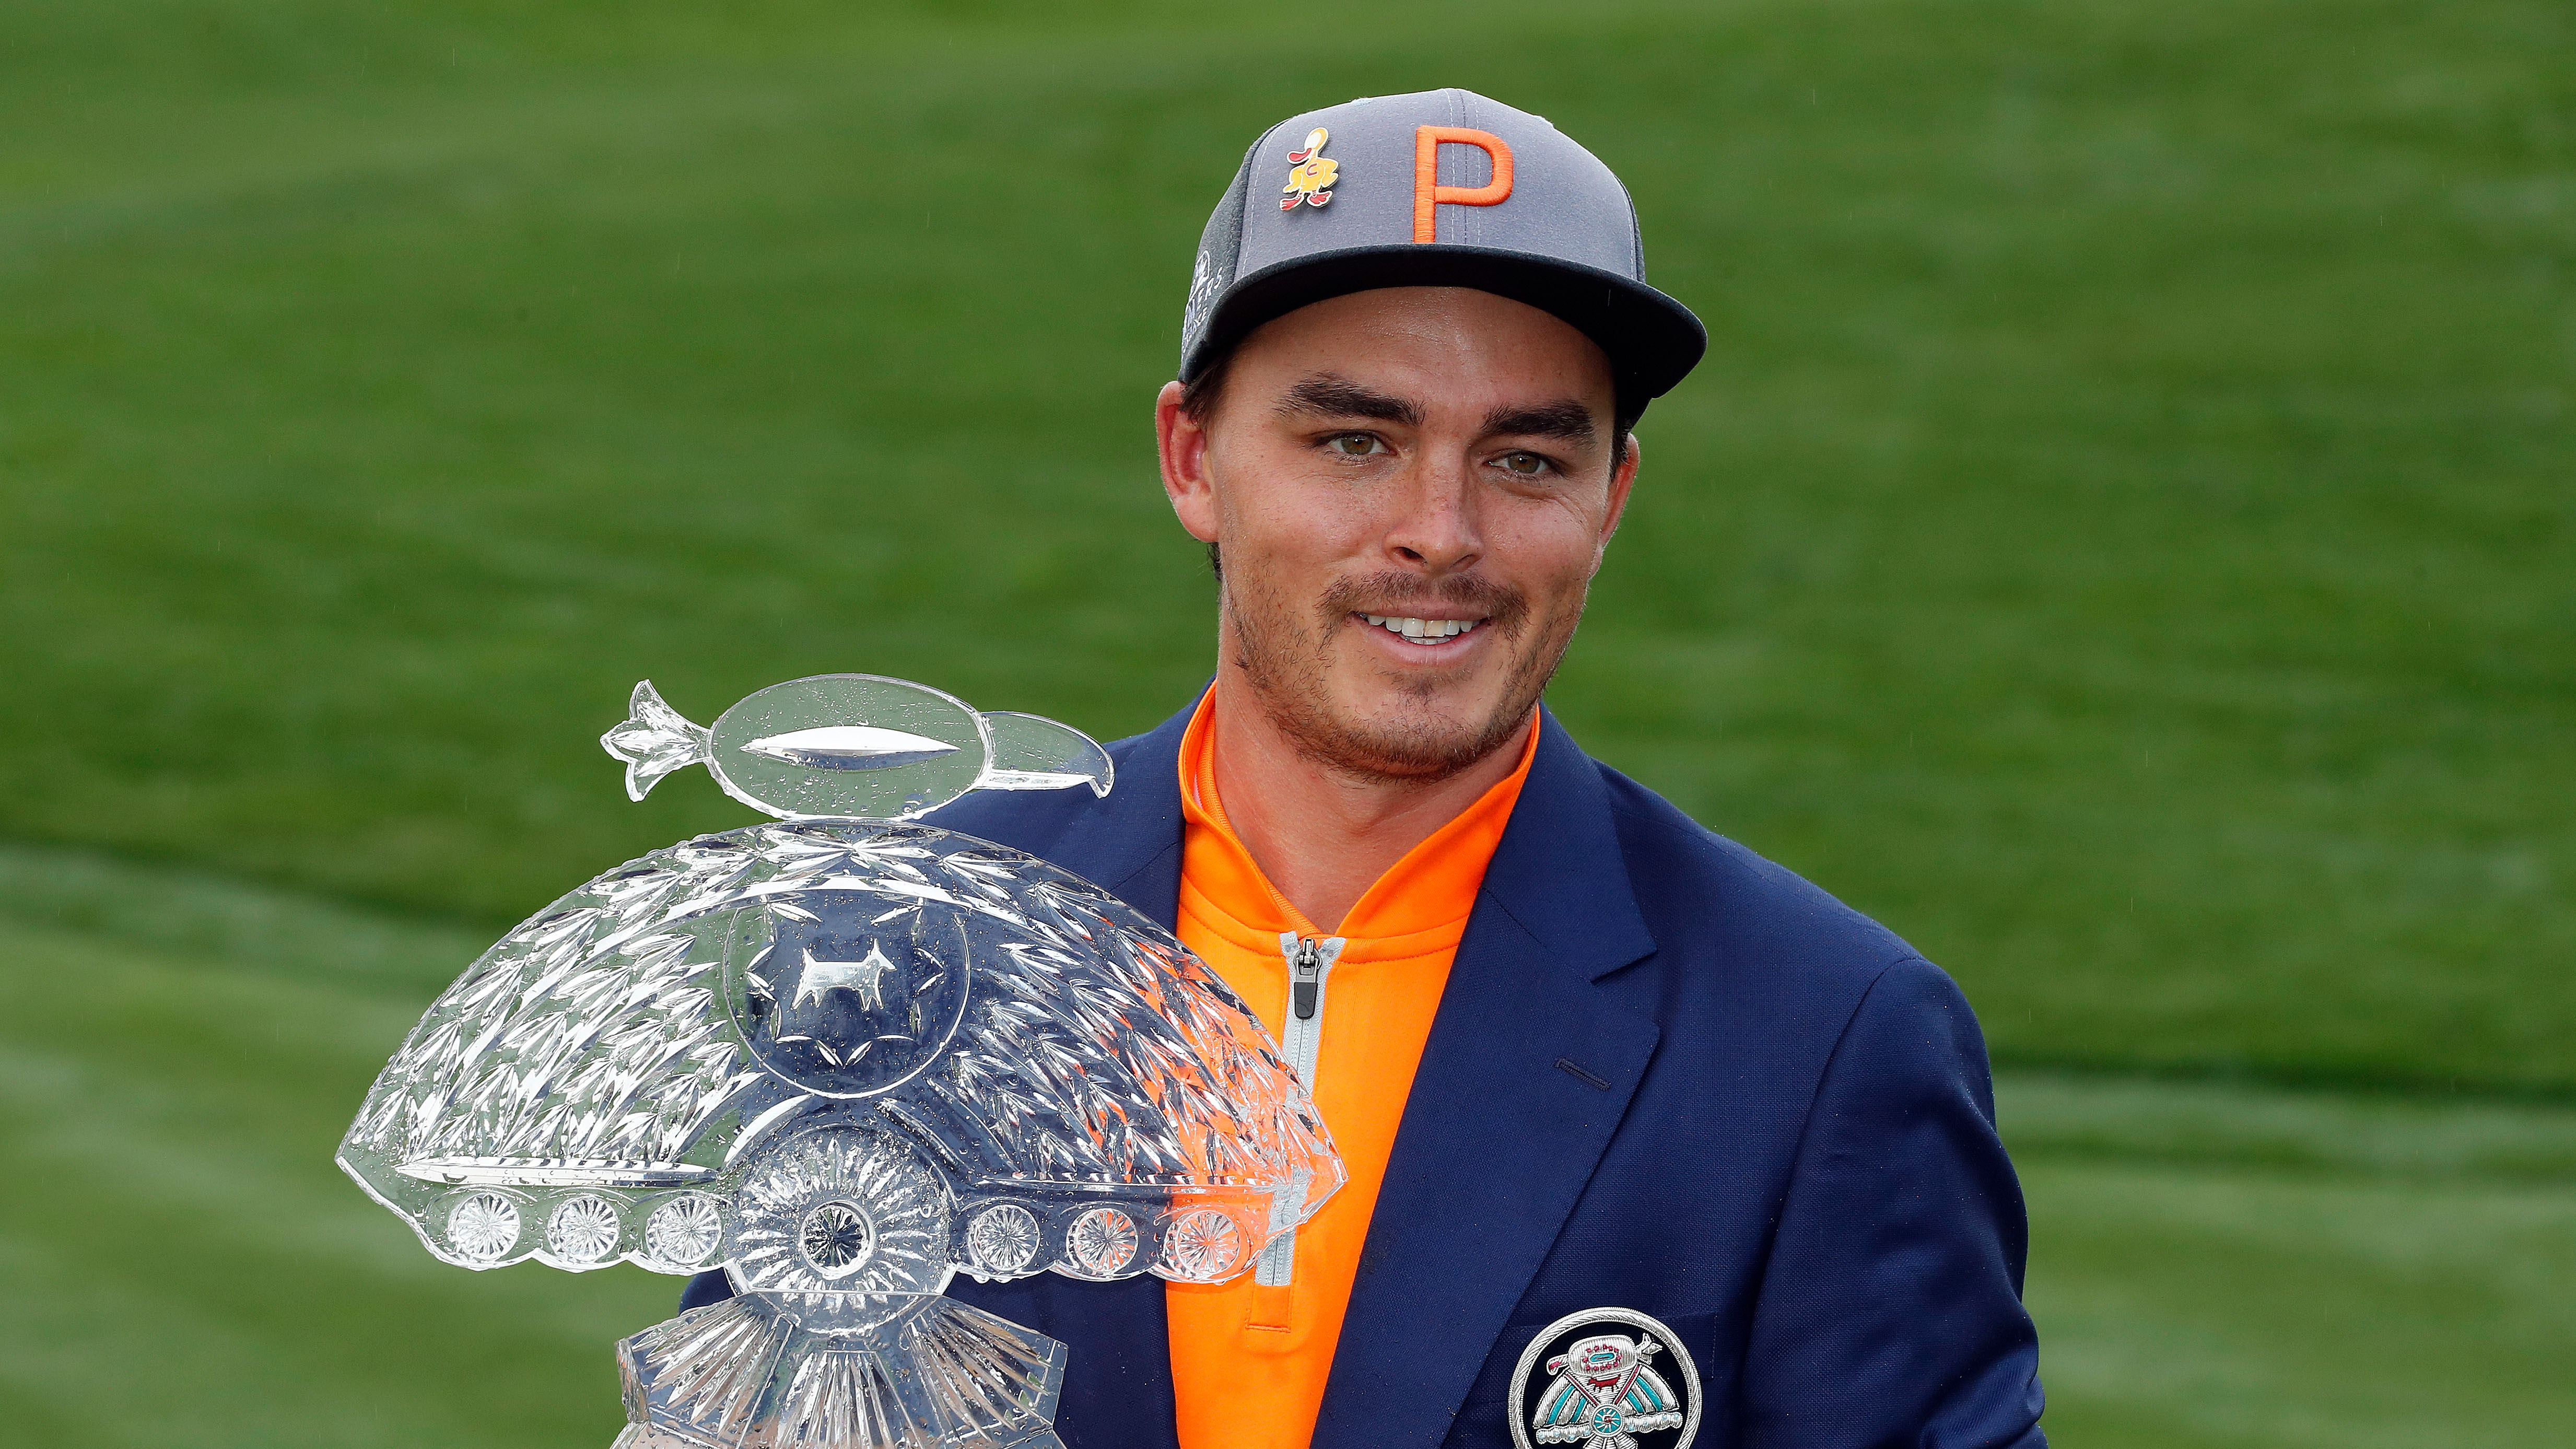 Rickie Fowler win proves point but his 2019 major